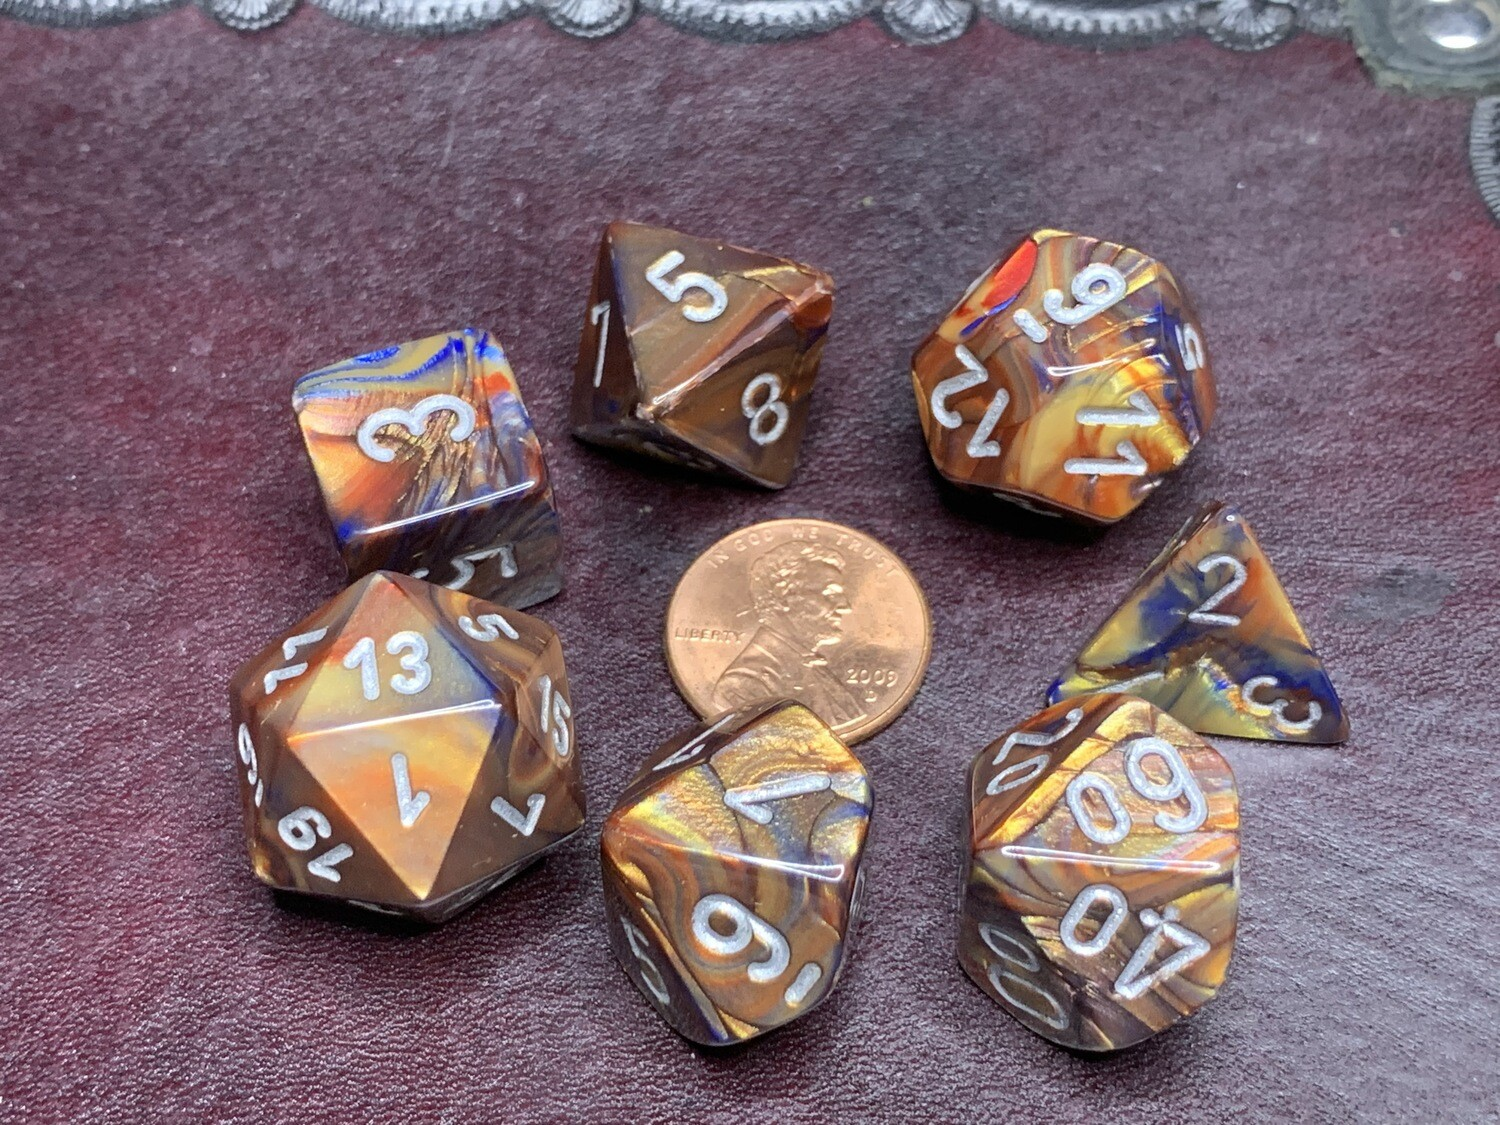 7 Die Dice Polyhedral Set - Chessex Lustrous Gold with Silver RPG Tabletop Games